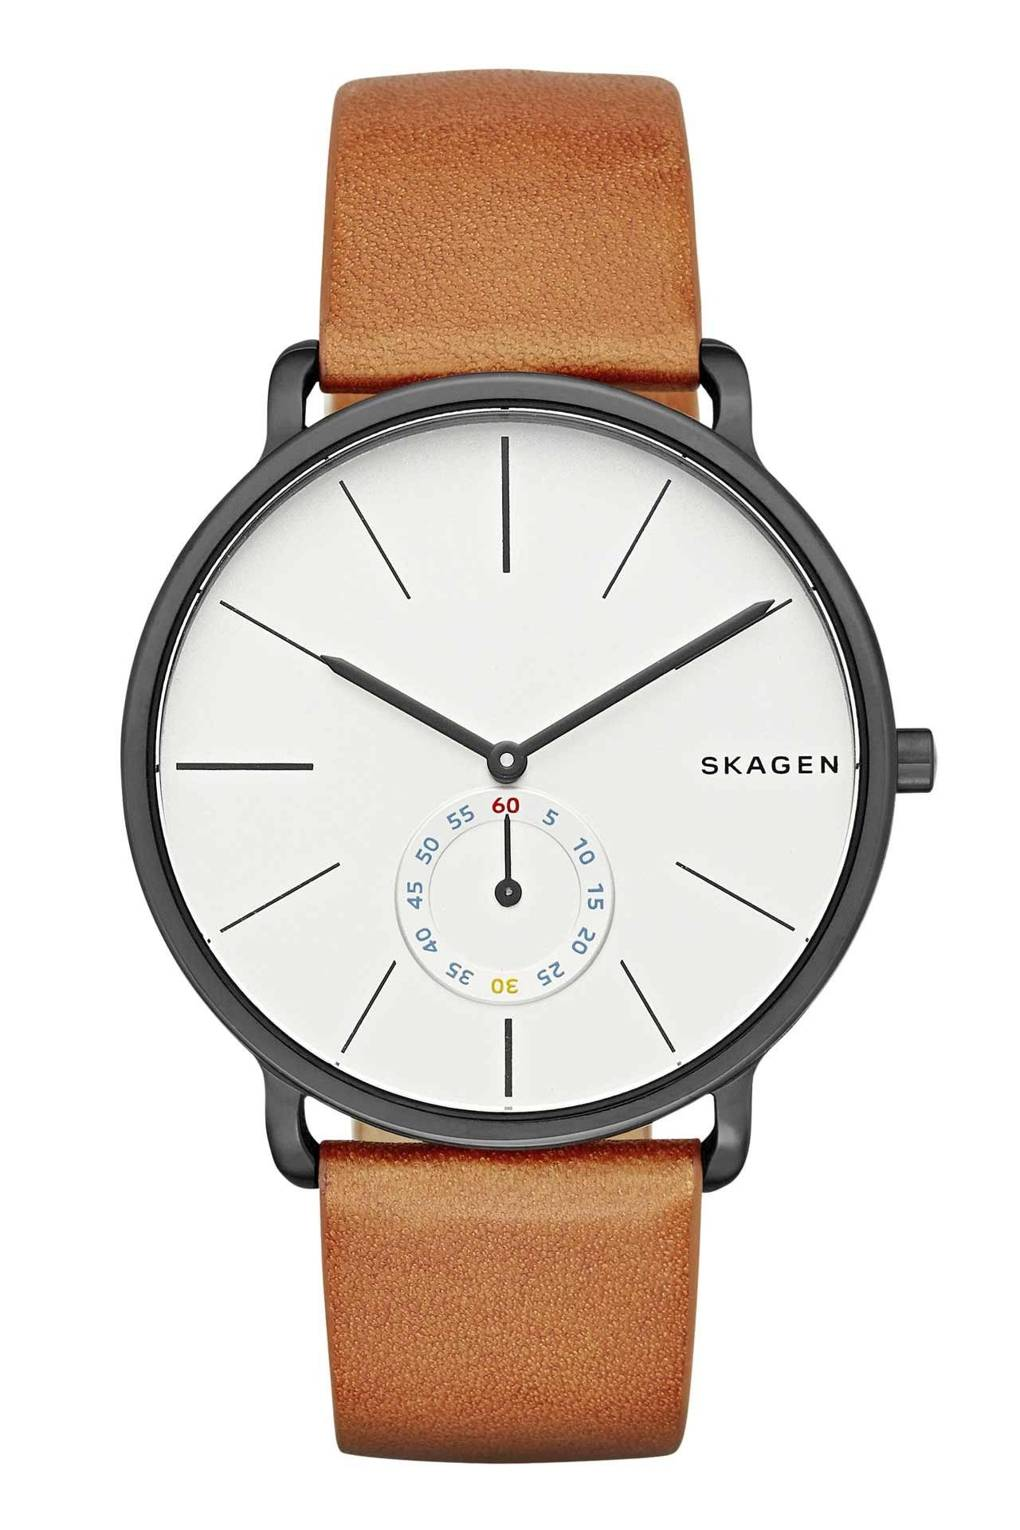 luxury pinterest white tiesociety s tan watch and men on plain best for mvmt my watches by images style mens leather clothing